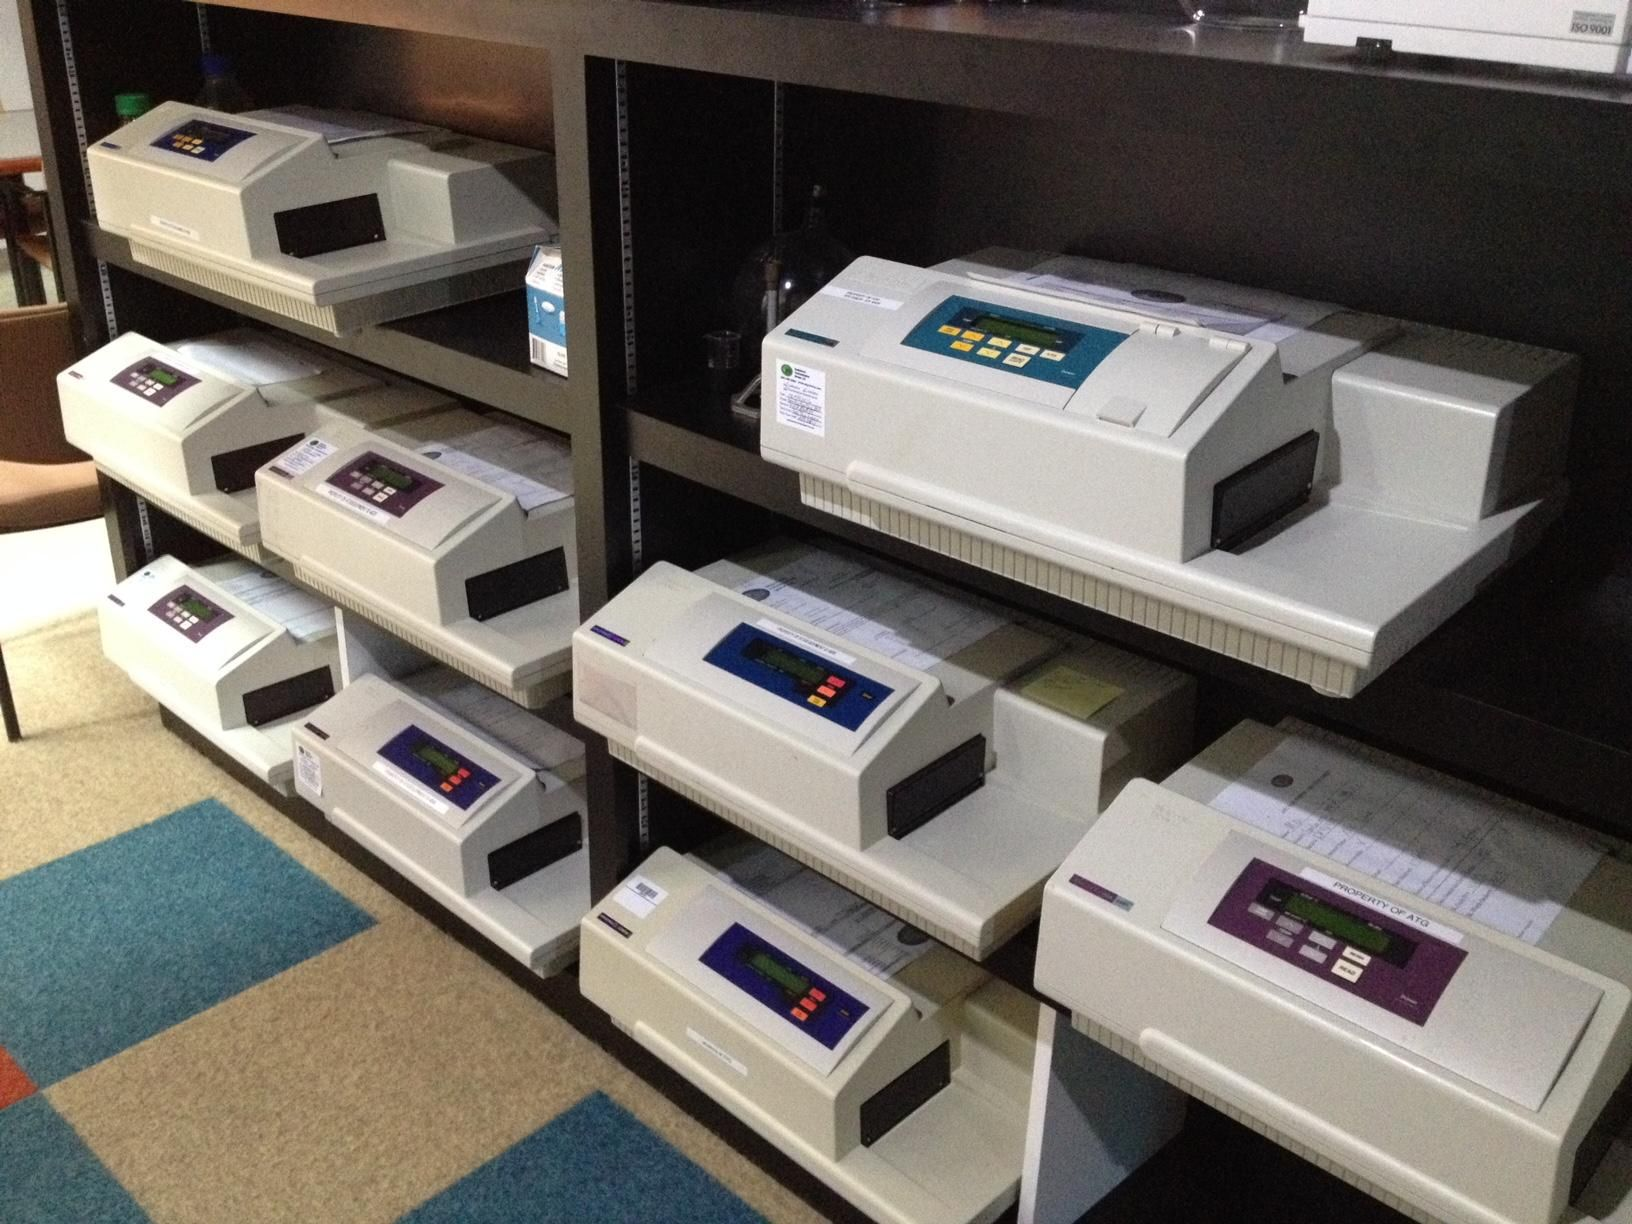 Fully Refurbished Molecular Devices Microplate Readers With One Year Warranty